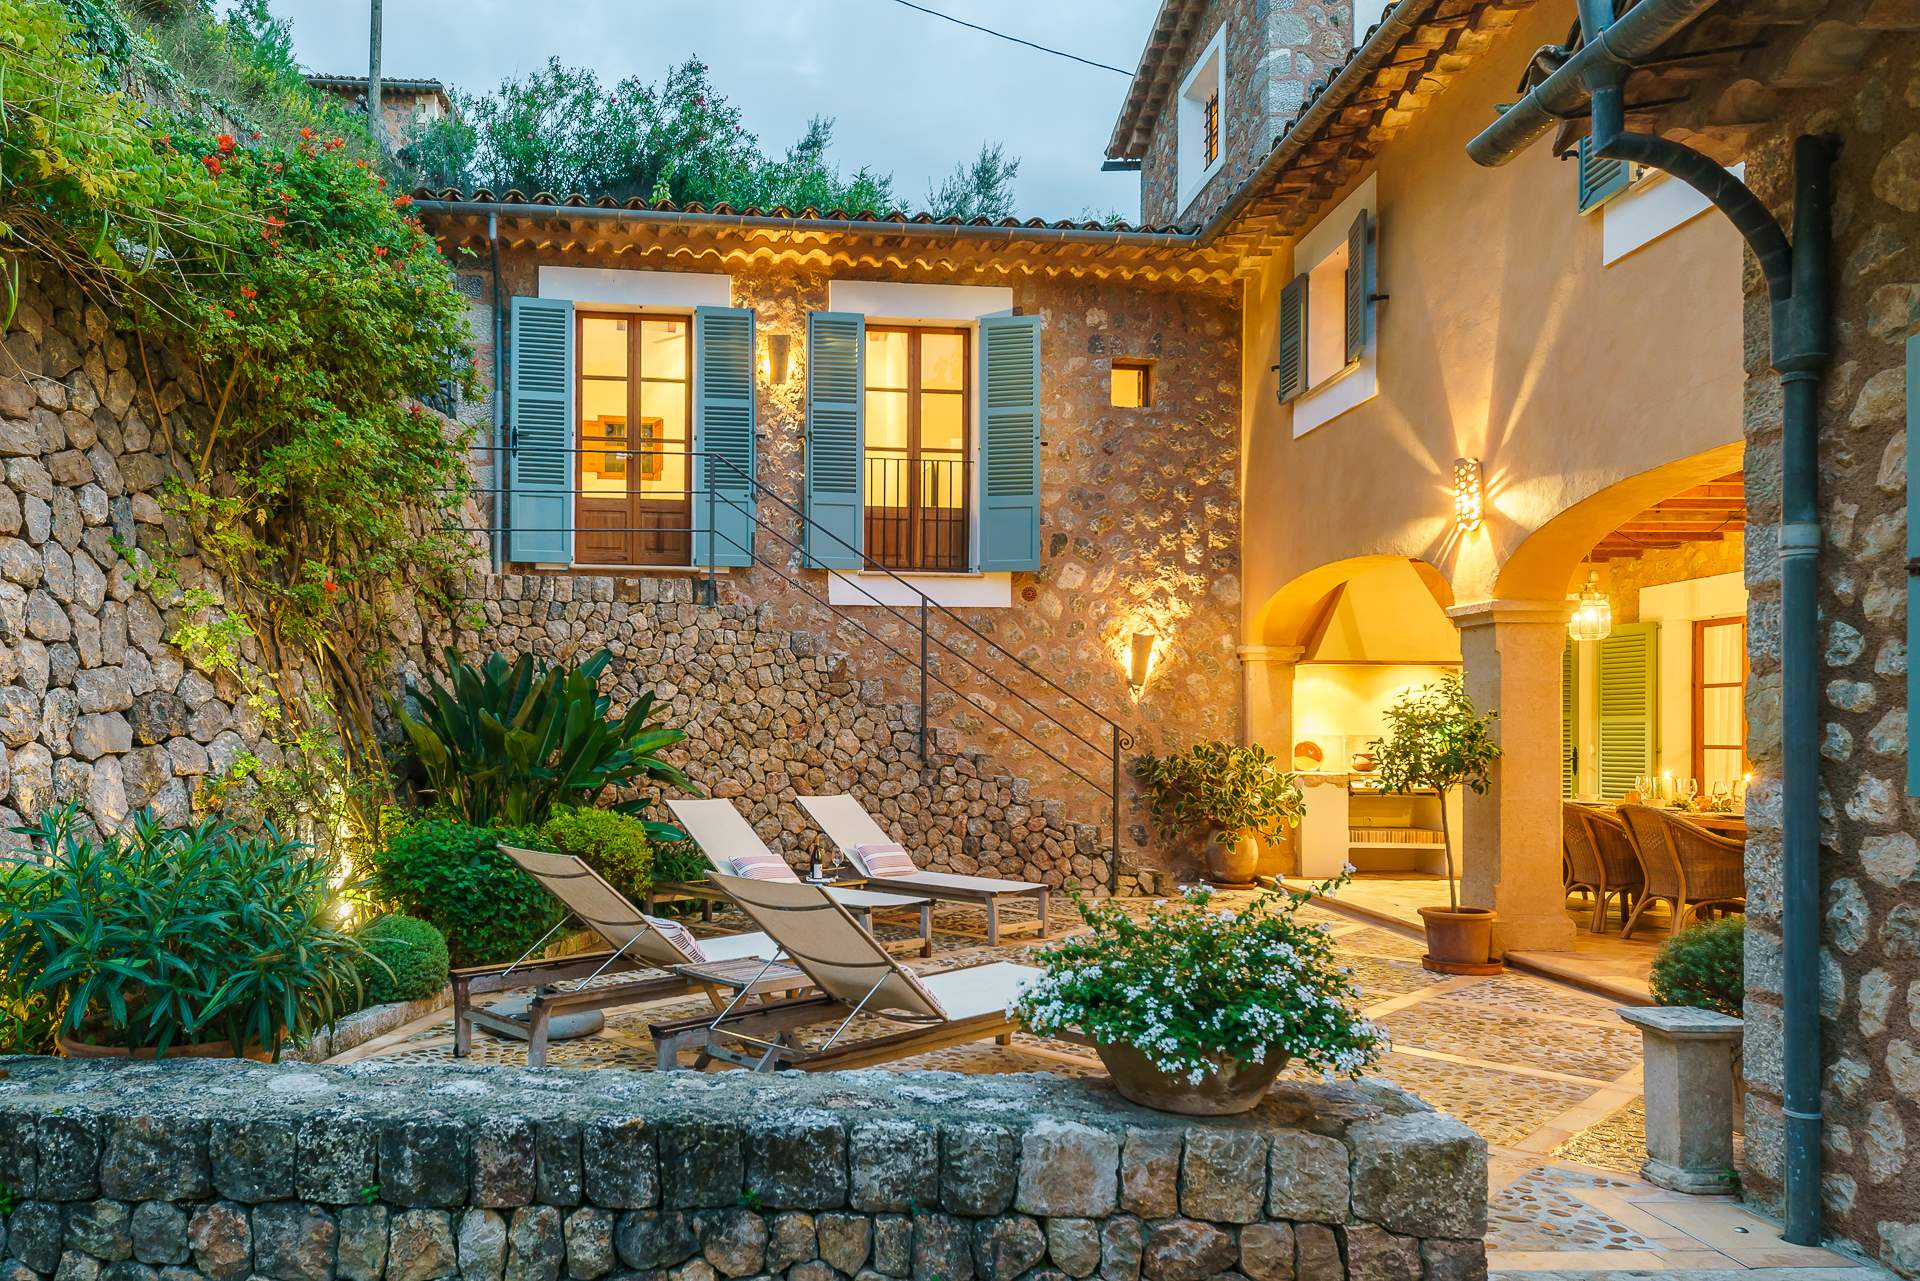 Sa Tanca, 3 Bedroom Rental, 3 bedroom villa in Soller & Deia, Majorca Photo #14